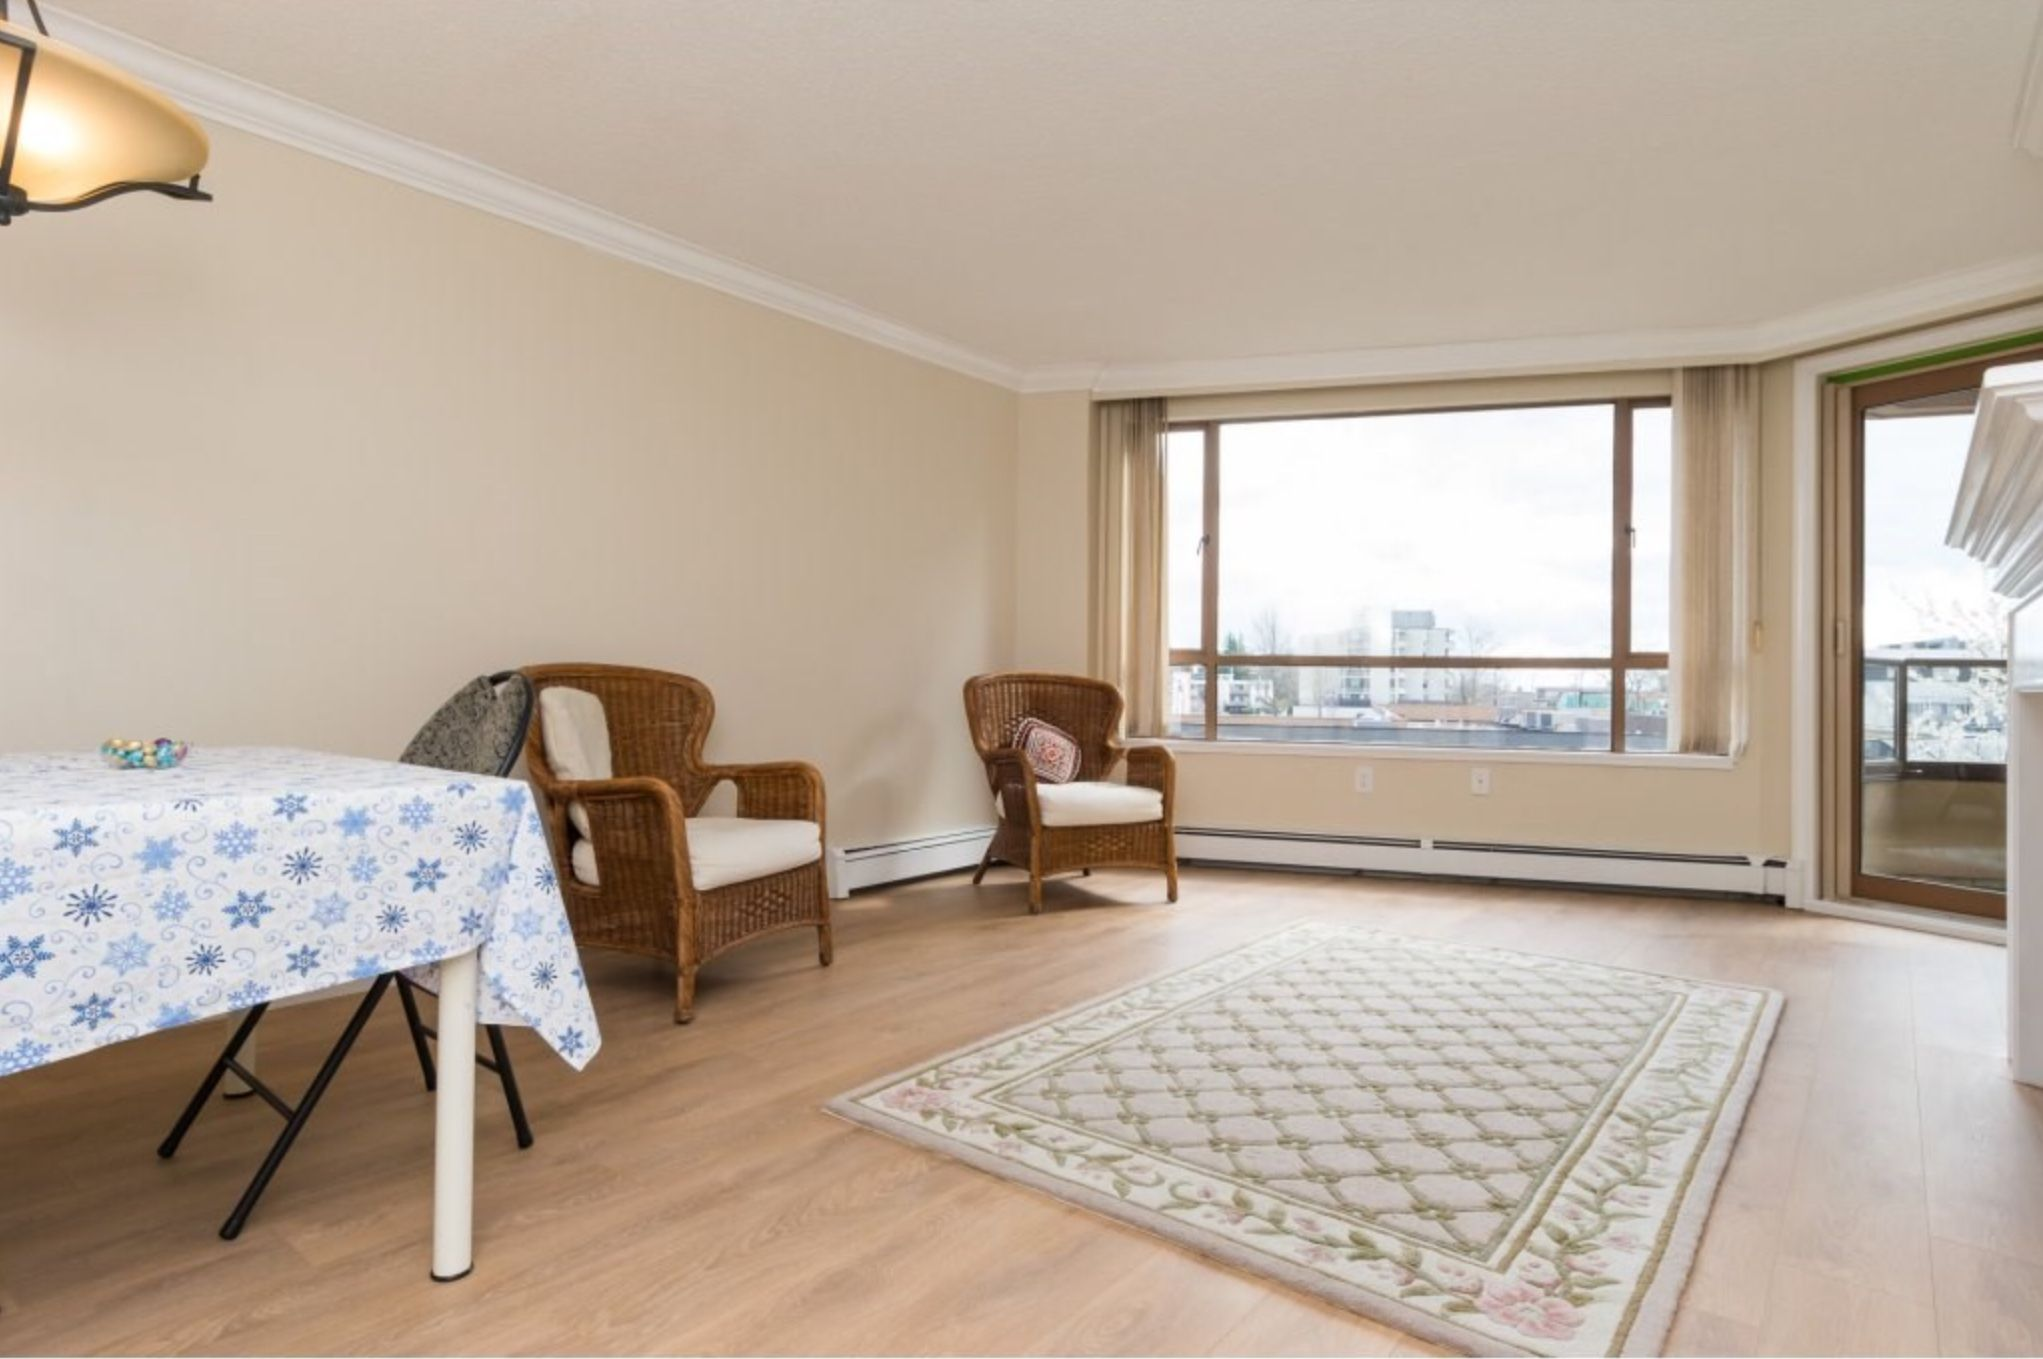 Photo 5: Photos: 410, 15111 Russell Avenue: White Rock Condo for sale (South Surrey White Rock)  : MLS®# R2152299